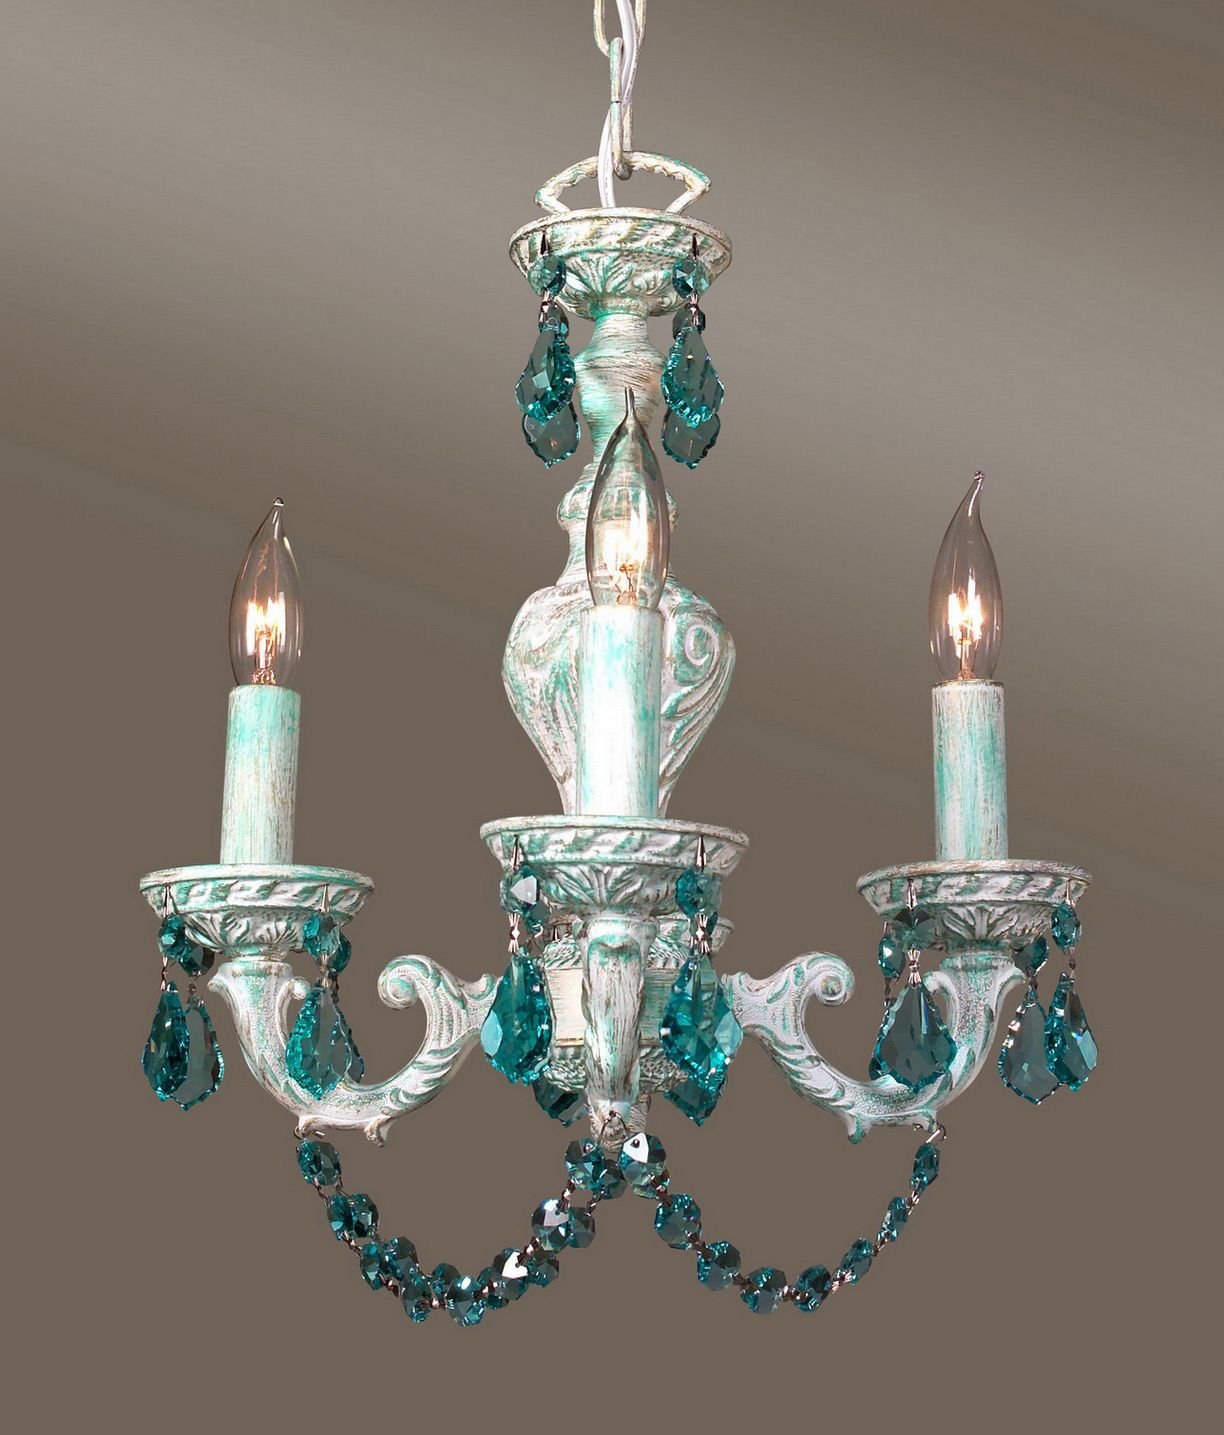 Light Blue Small Chandelier Small Chandelier Bedroom Small Crystal Chandelier